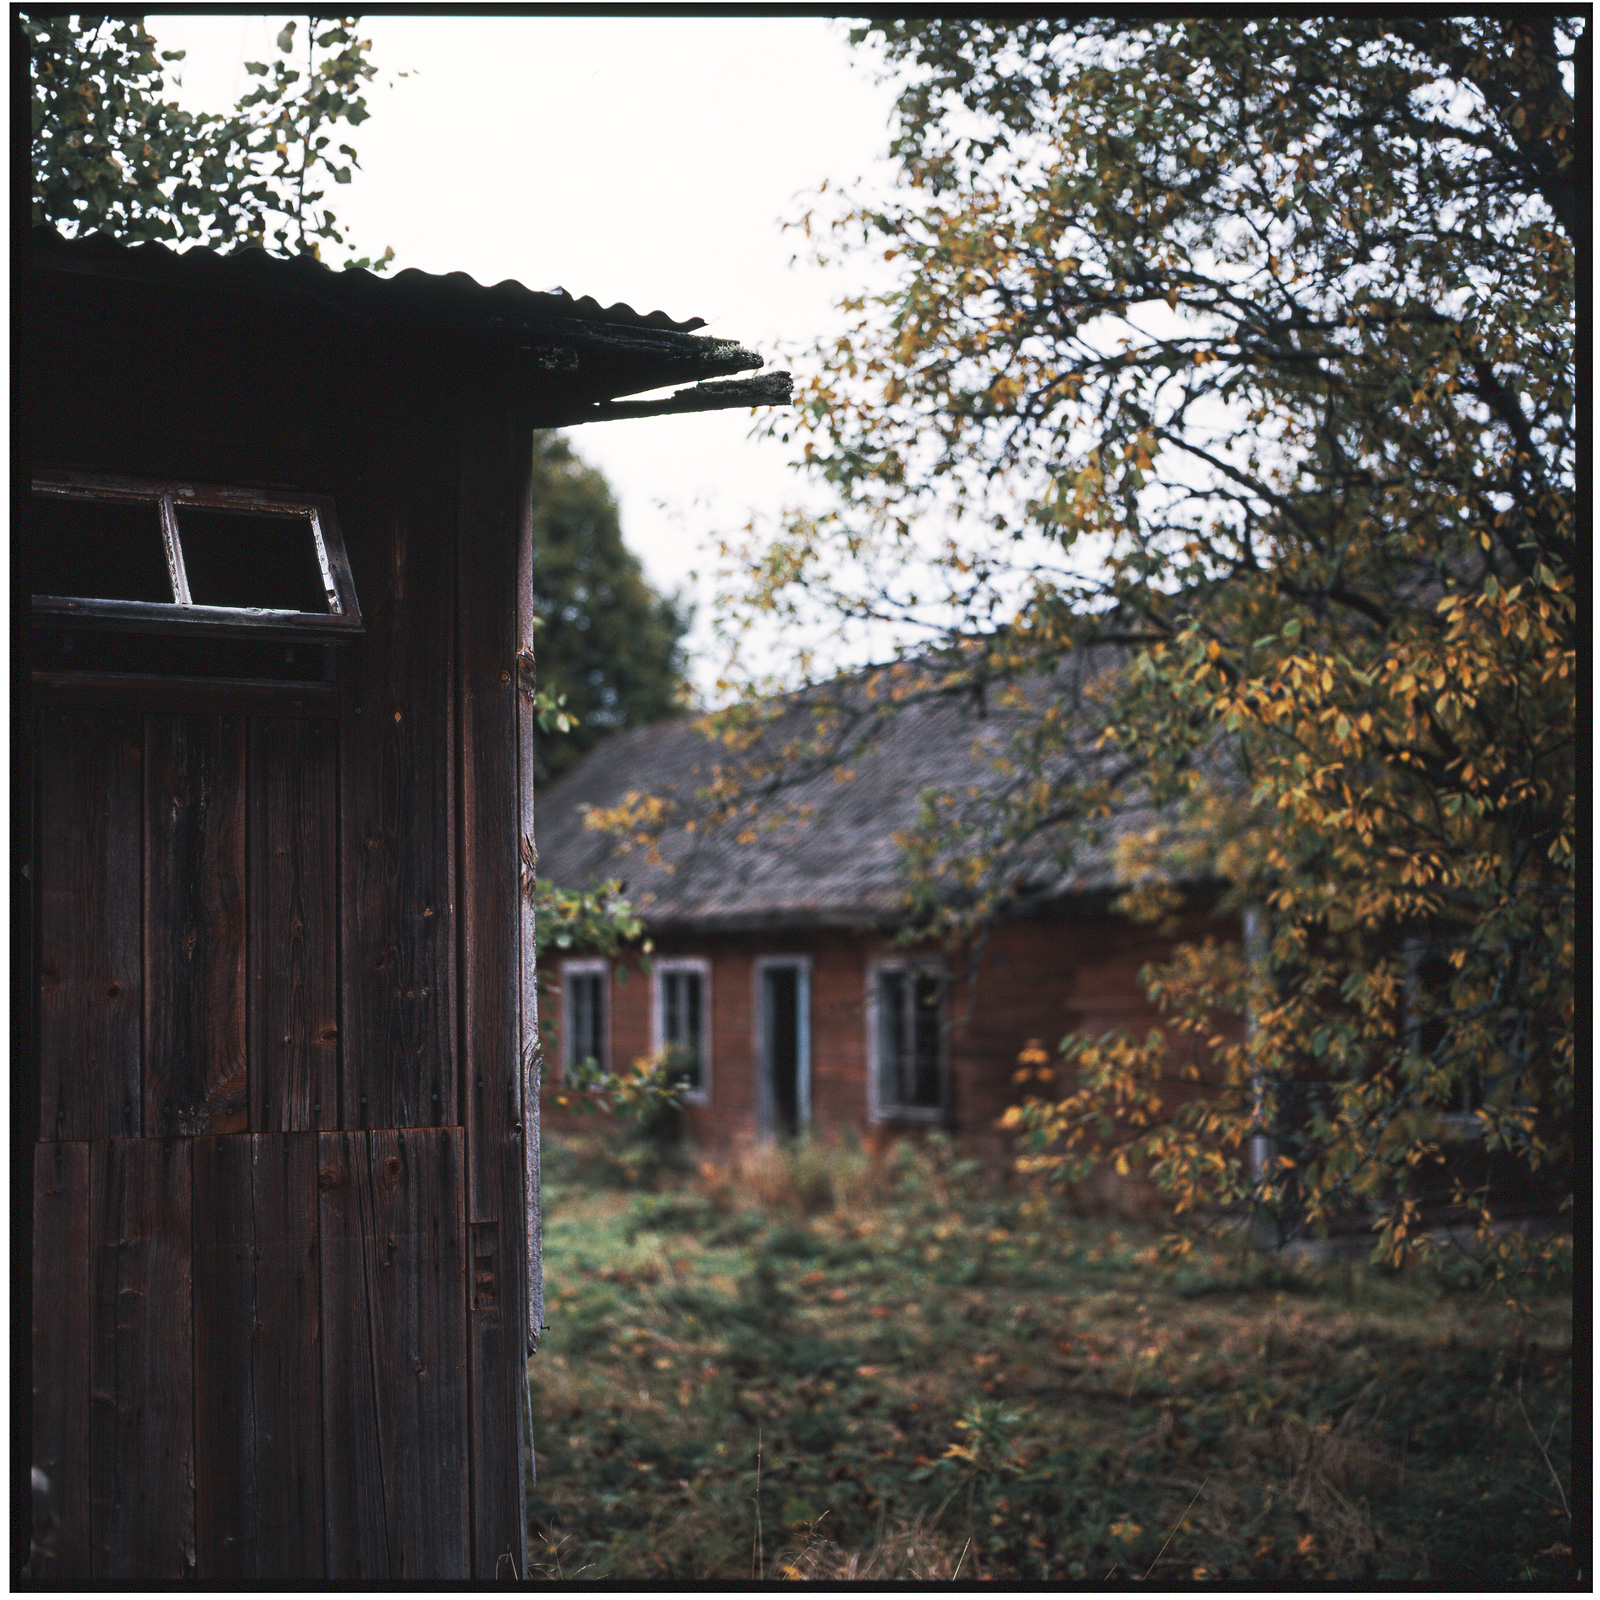 Worker's housing outhouse at Tidafors, Värmland, Sweden. September 2007.